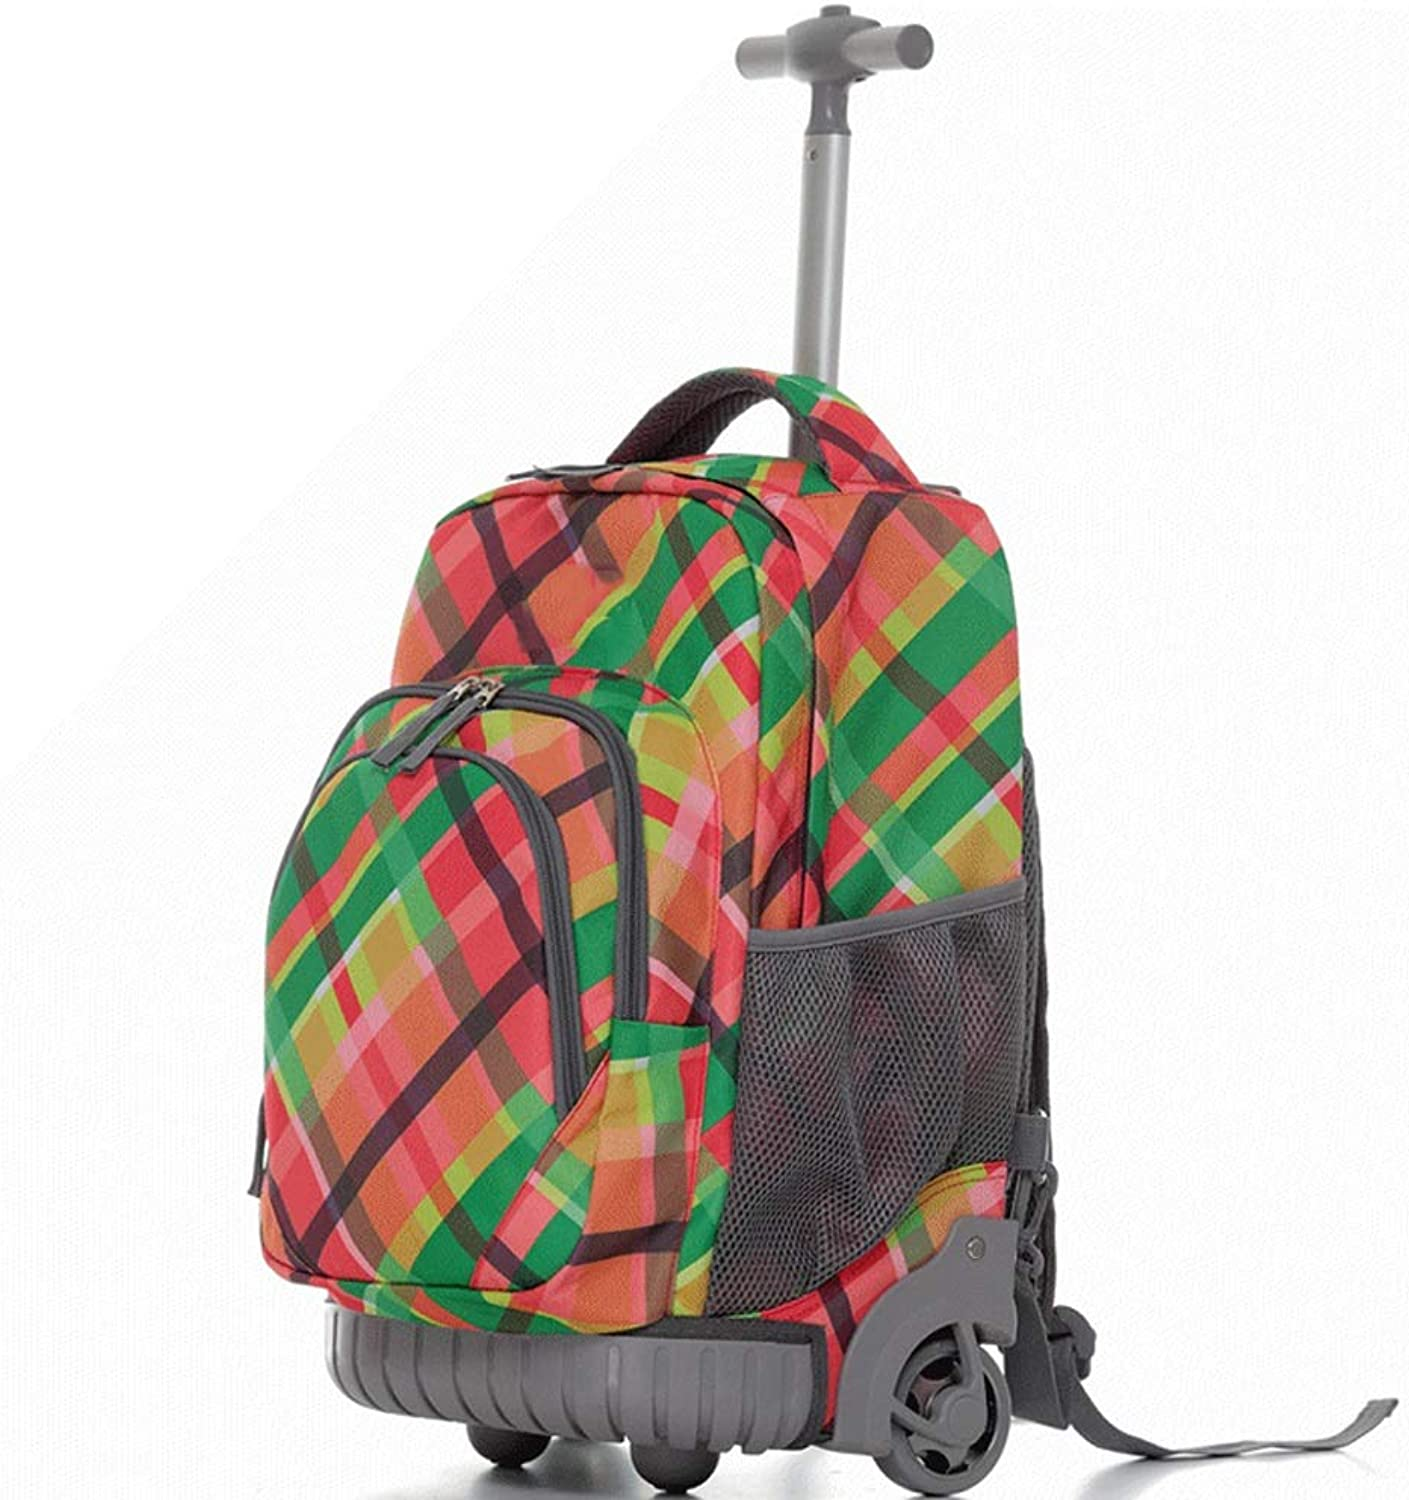 YEXIN Wheeled Laptop Backpack, Great for High School, College Backpack, Rolling School Bag, Travel Backpack, Carryon Bag Perfect for Boy and Girl